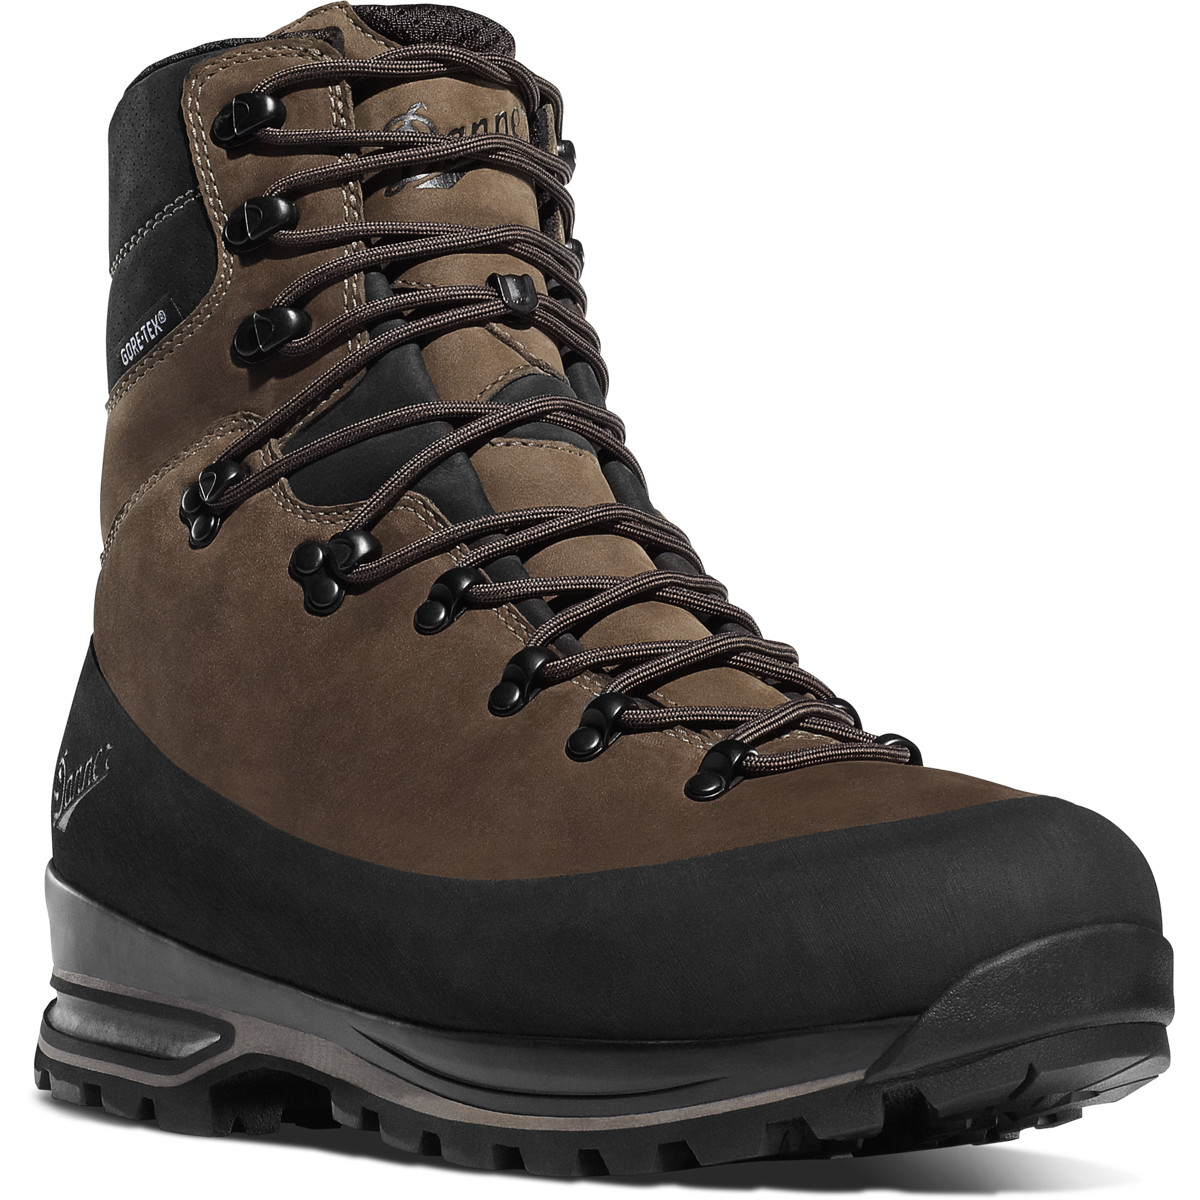 Danner Hiking, Trail Leather Boots for Men | eBay